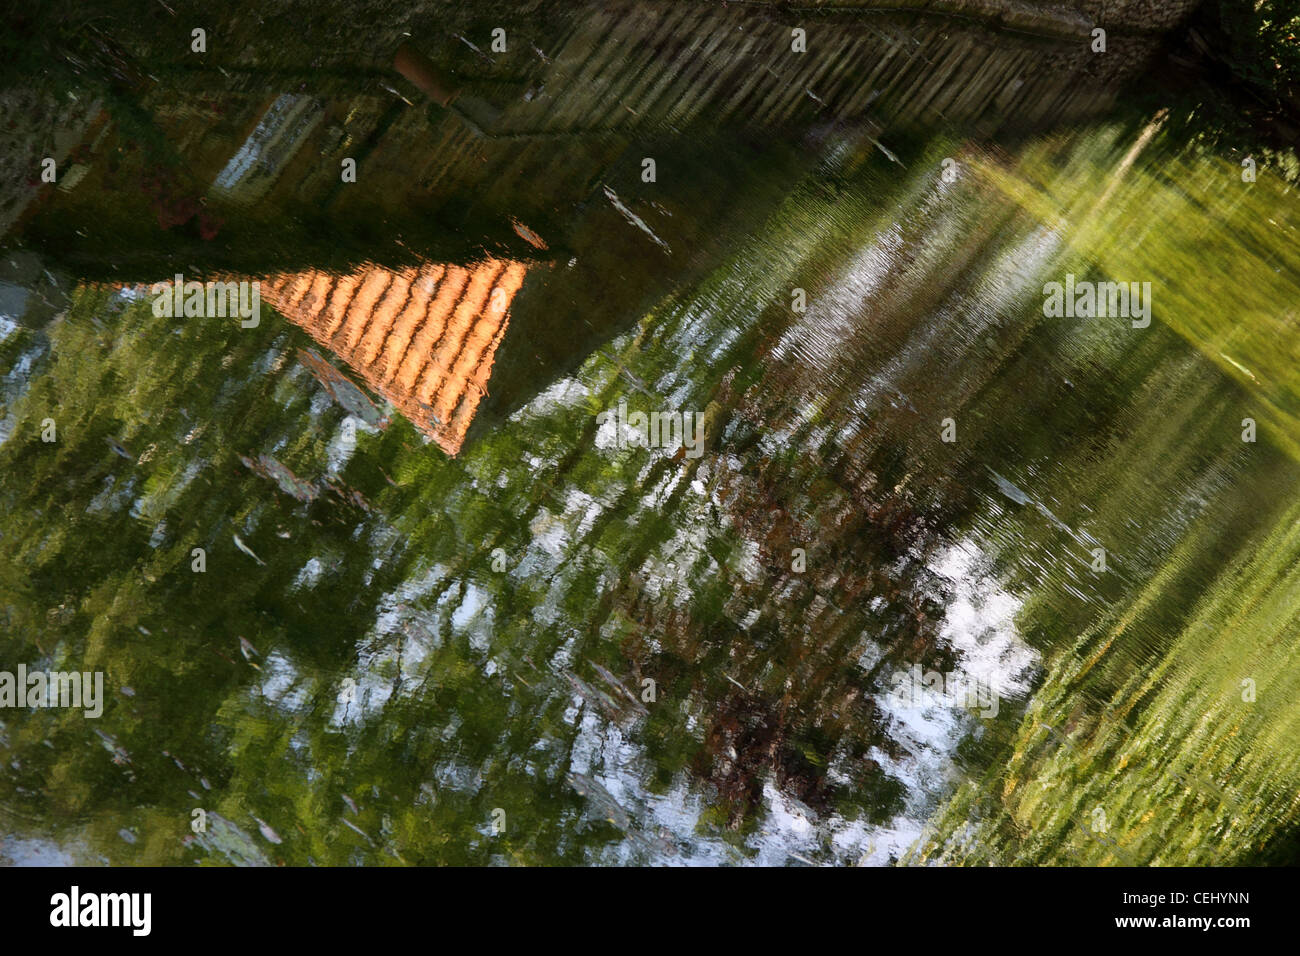 Reflections of green trees in a shallow rill of water. Water feature in a garden. Abstract view of water. Stock Photo